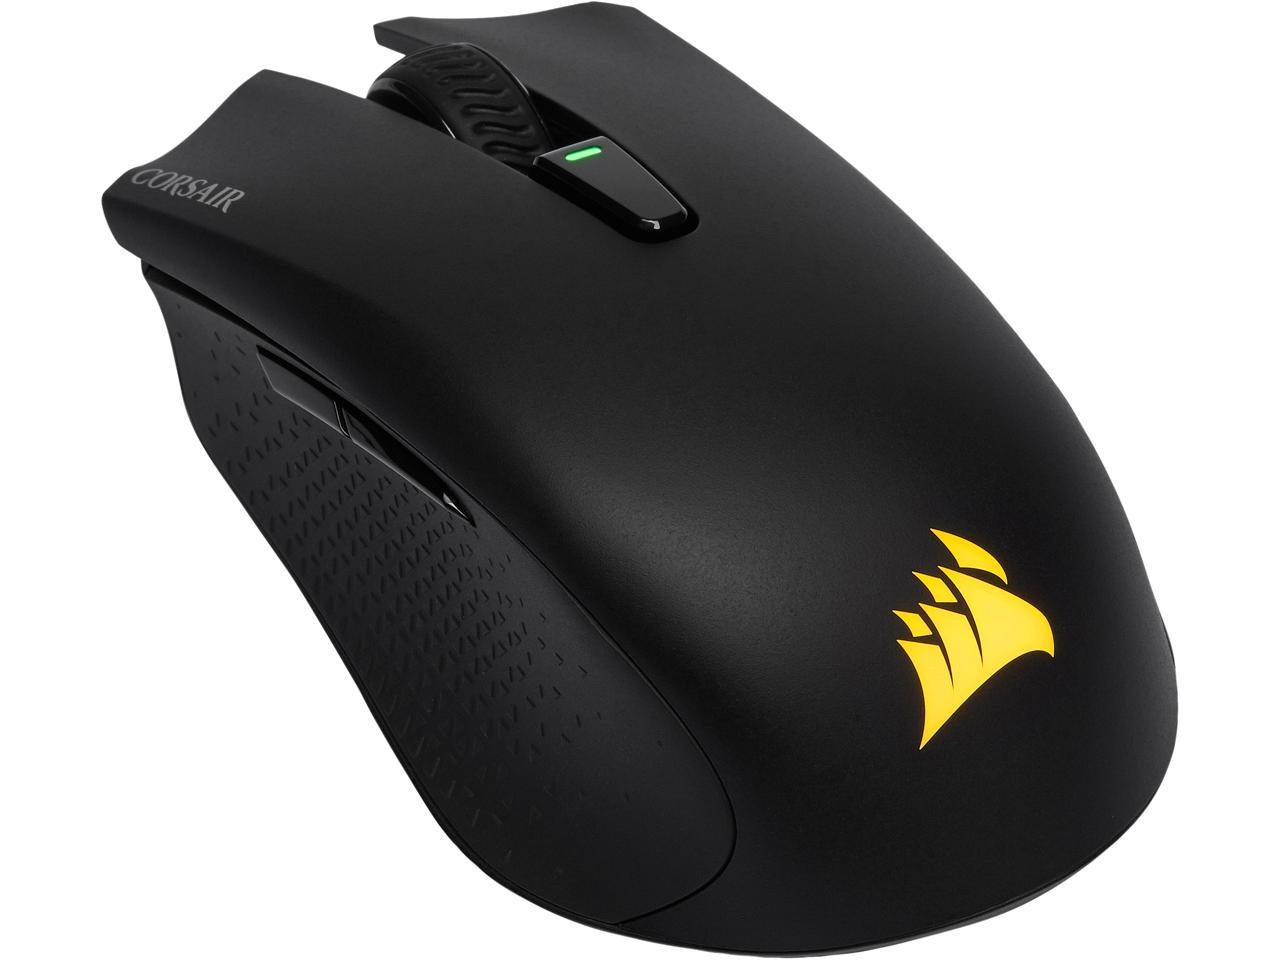 Macro Definition Game Mouse 9 Button Can Be Illuminated Up to 6000Dpi High Performance Mouse Home Mouse